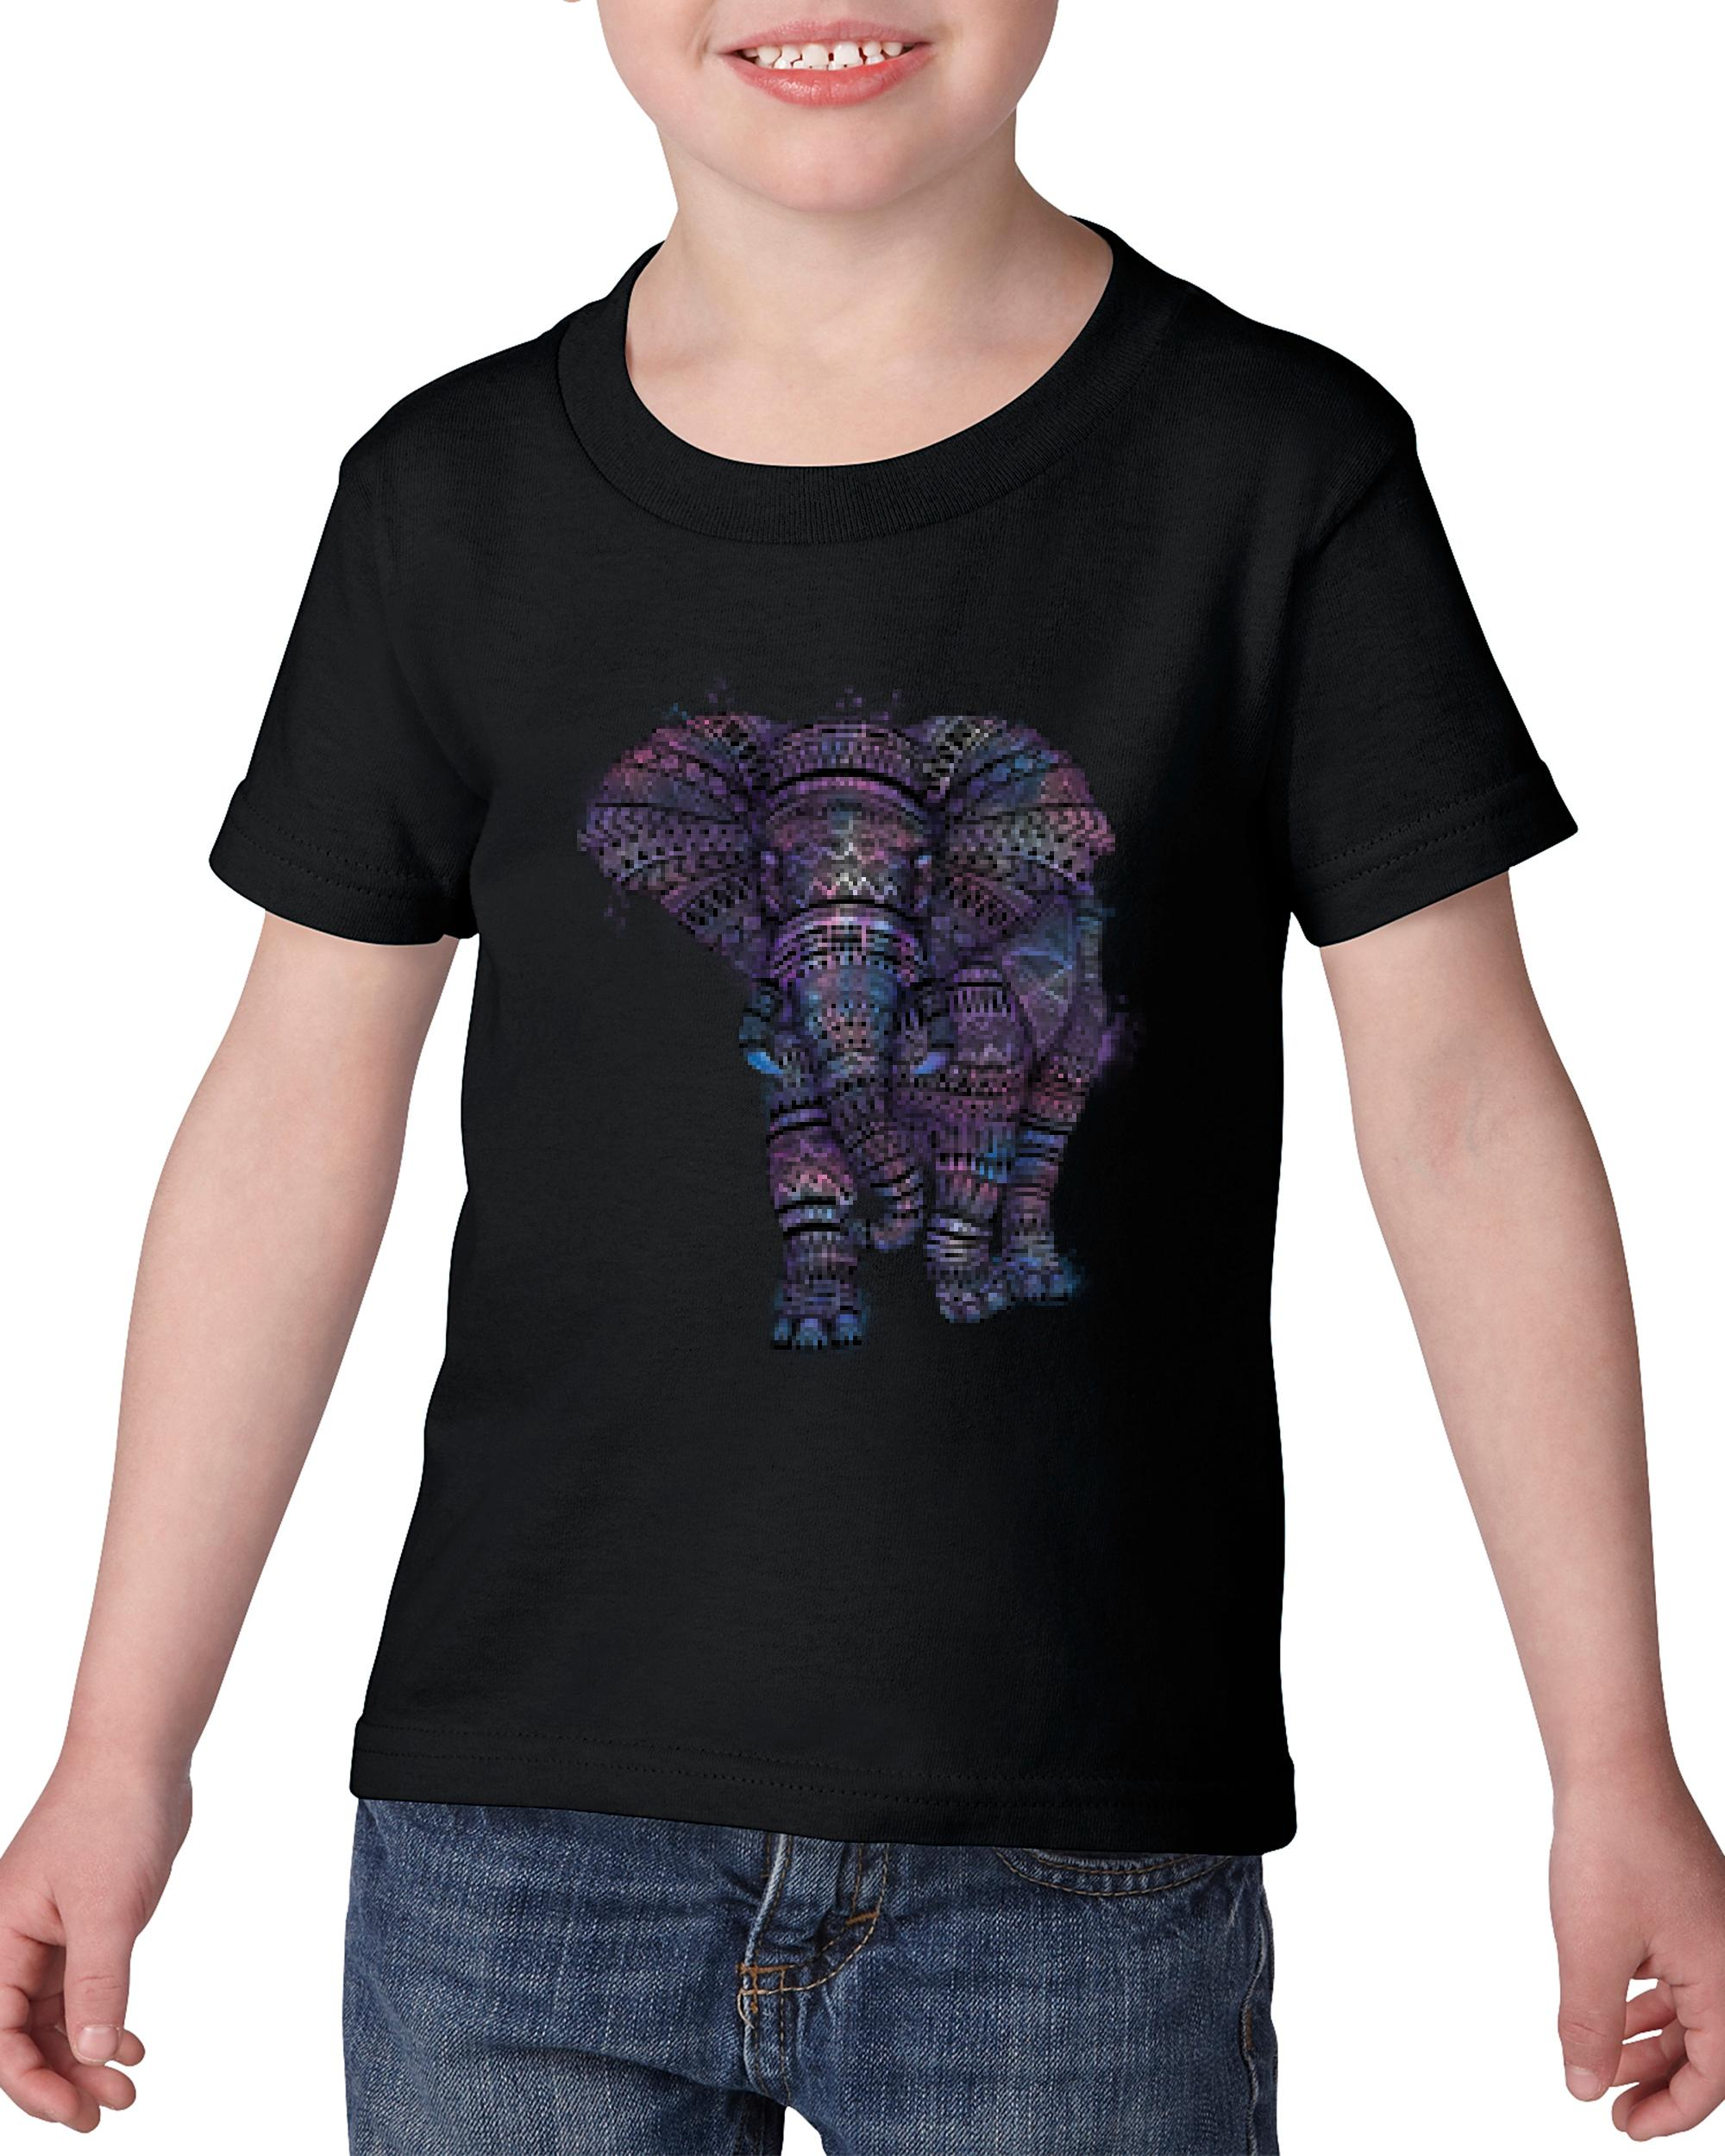 Artix Amazing Elephant Matching Couples Gift for Birthday Christmas Party Heavy Cotton Toddler Kids T-Shirt Tee Clothing